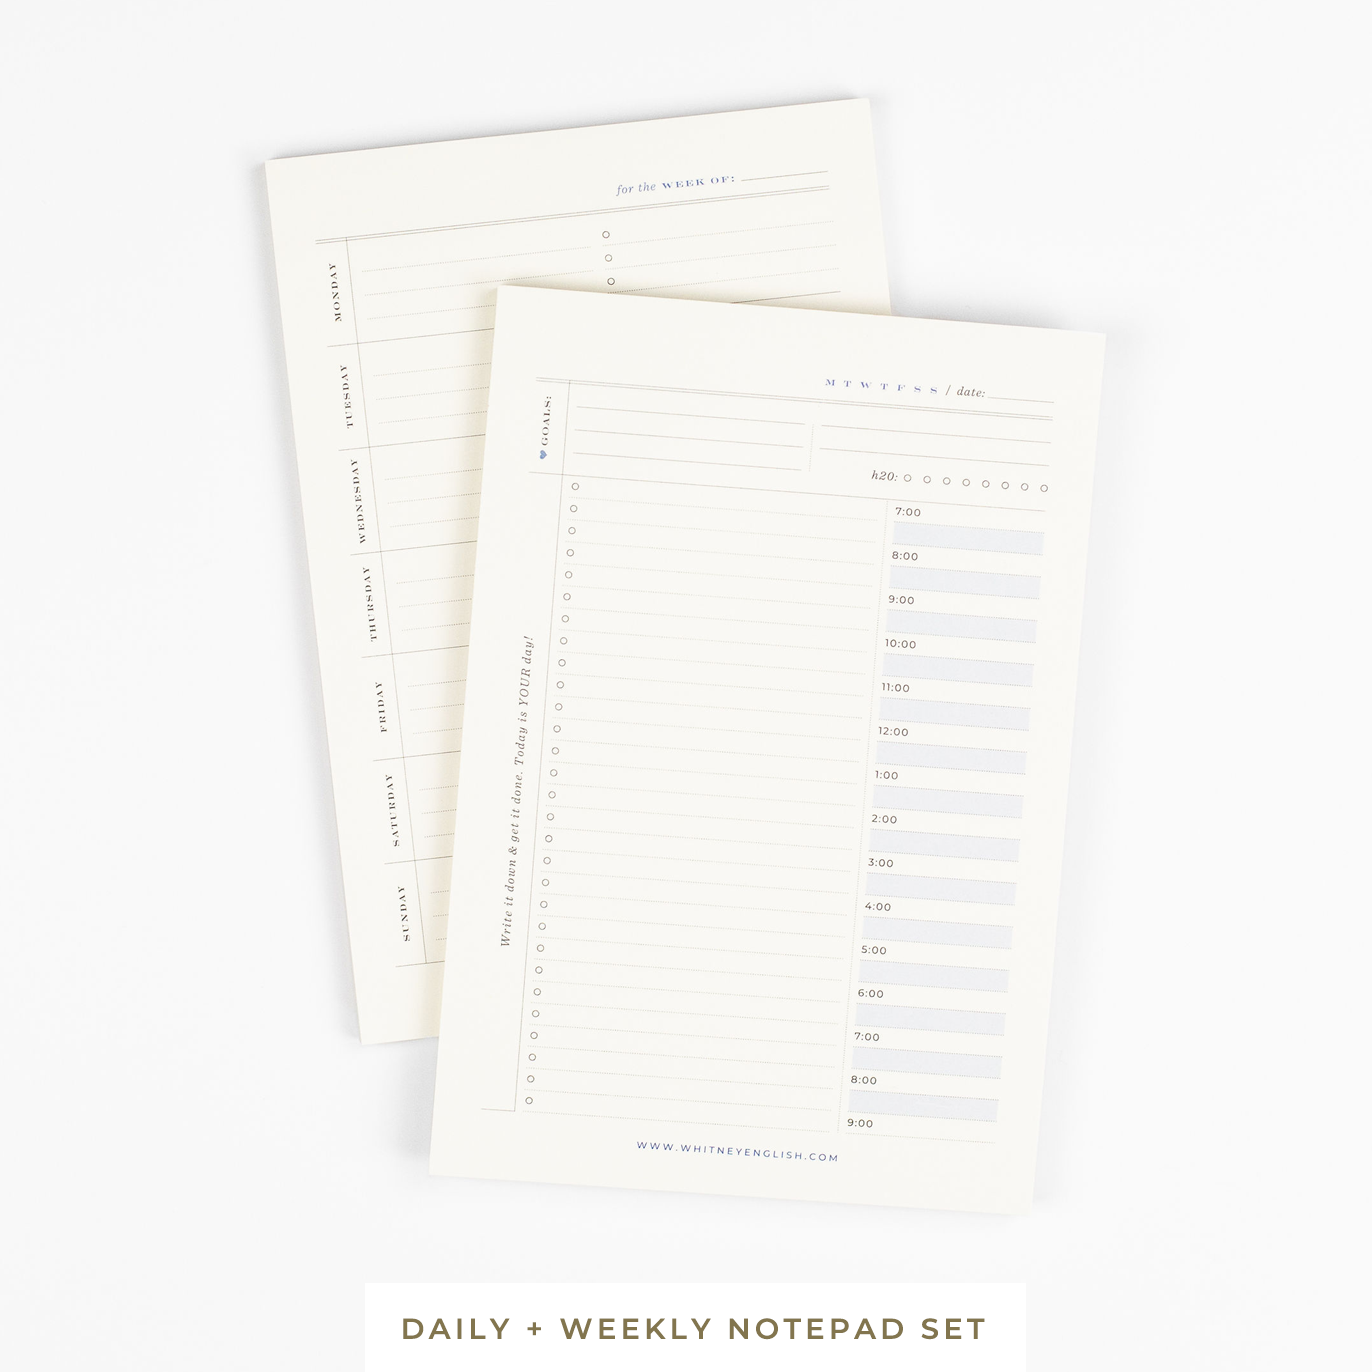 Daily & Weekly Notepad Set ($22 Value!)